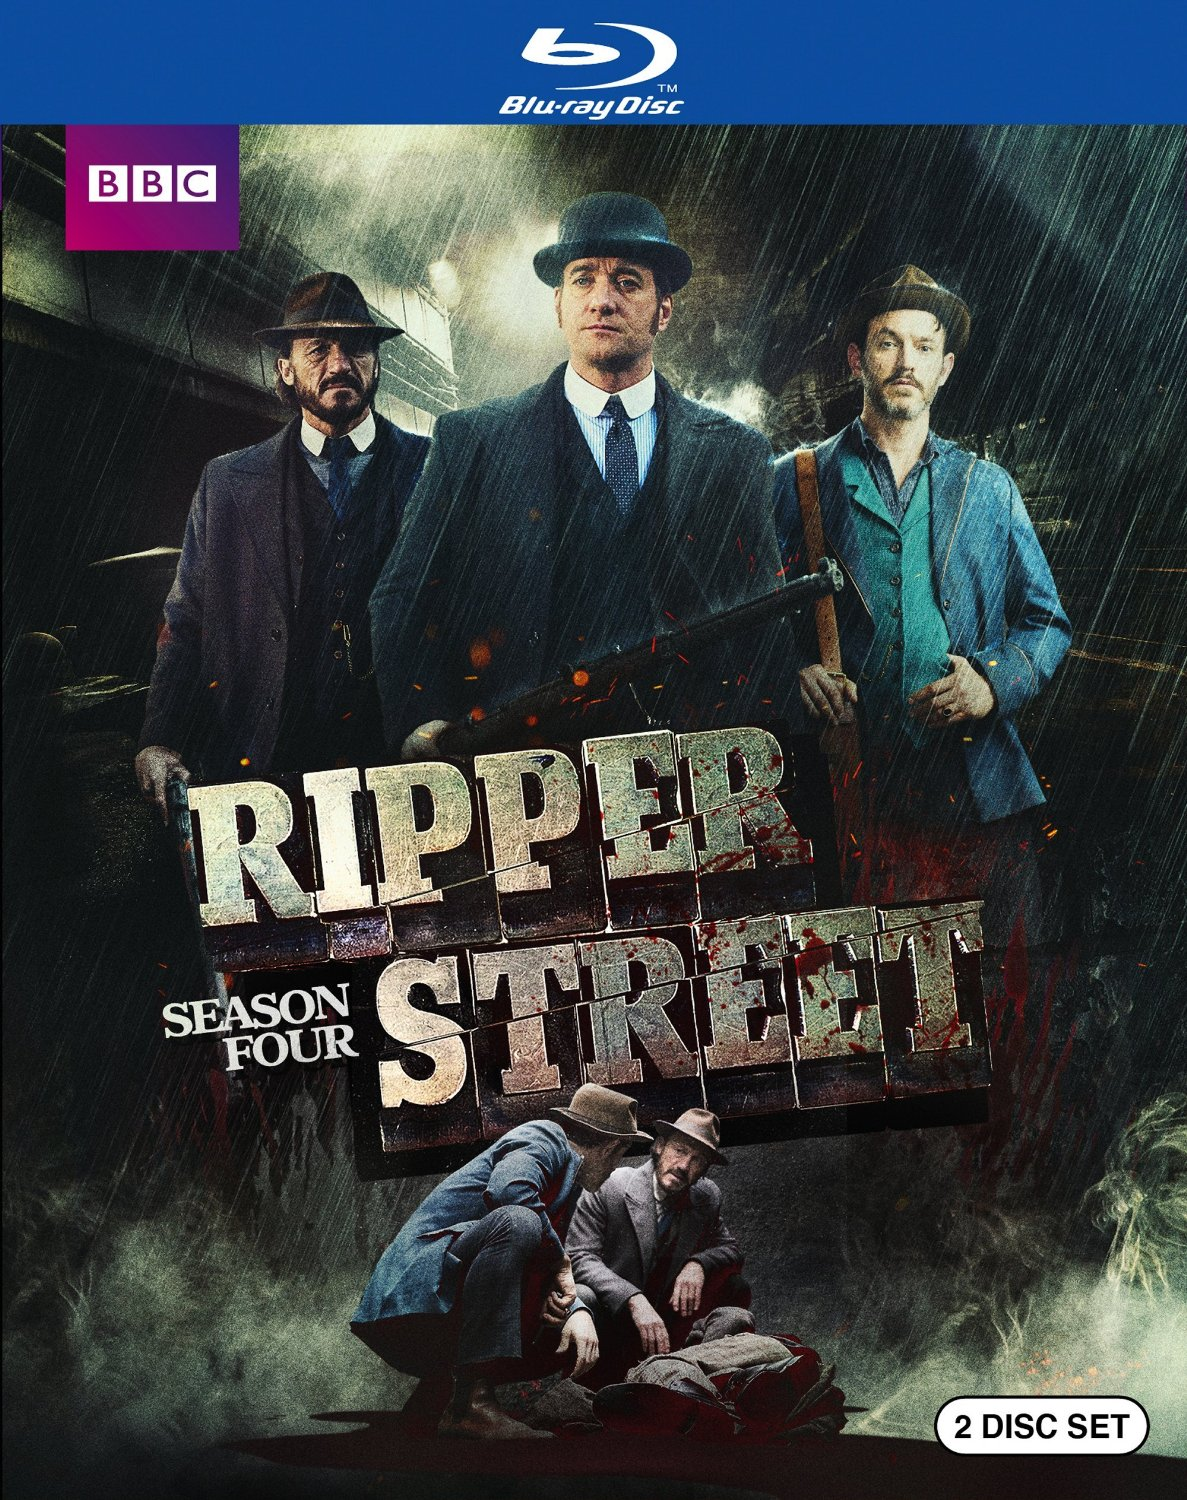 Ripper Street [TV Series] - Ripper Street: Season Four